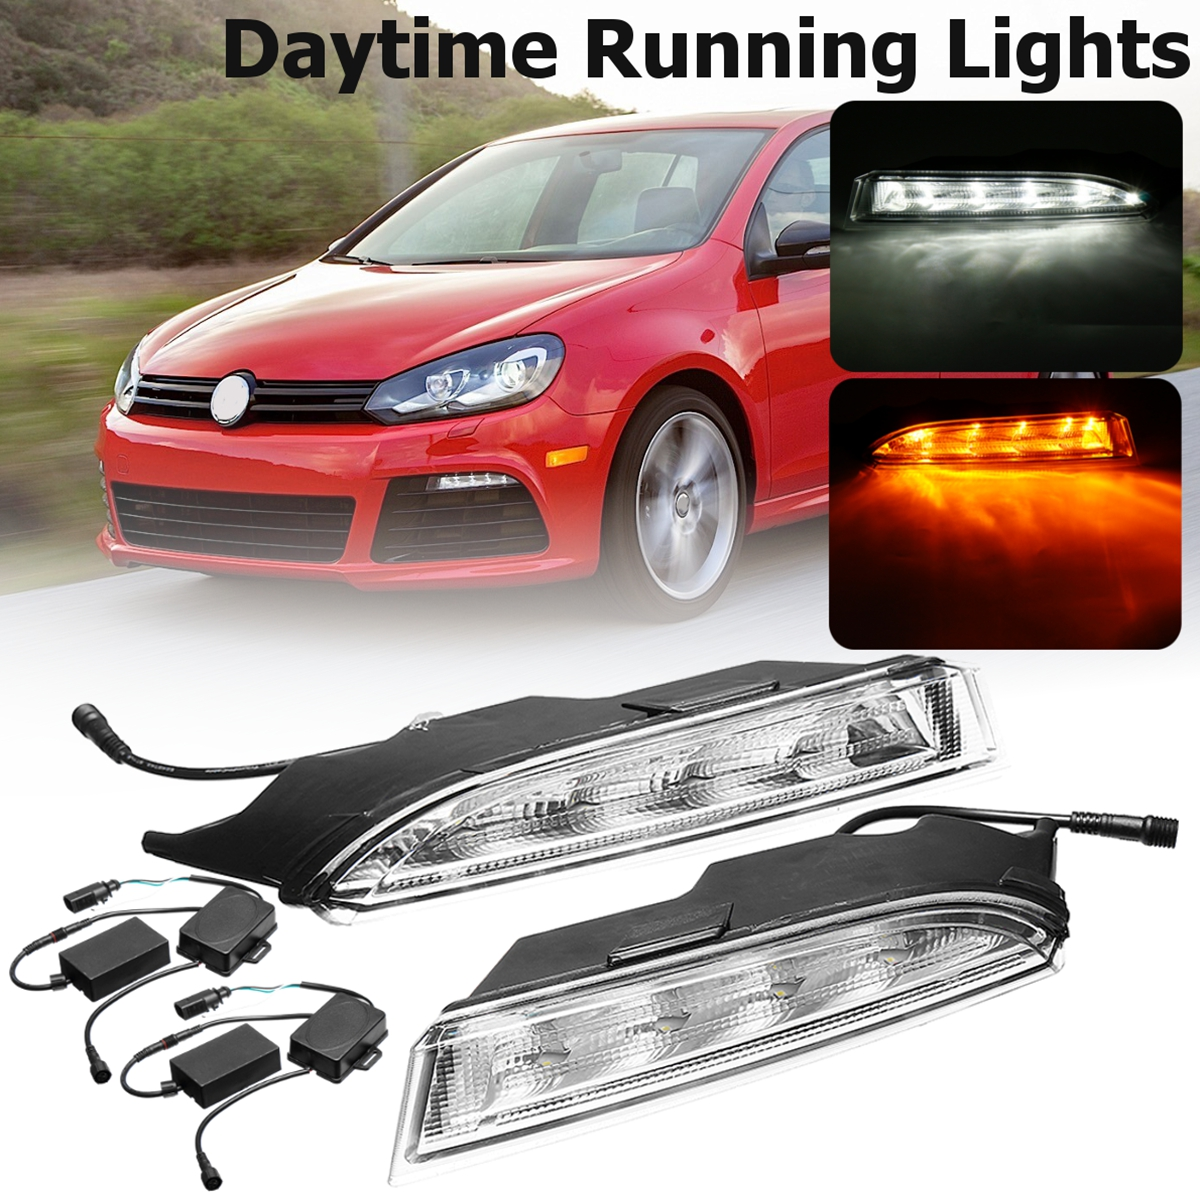 For VW Golf 6 MK6 R20 2009 2010 2011~2013 1 Pair Led Car-Styling Day Daytime Running Light Fog Light Lamp bumper lamp LED DRL 1 set daytime running light drl led fog lamp fit for2010 2011 2012 bmw e90 lci 3 series 328 335 car styling led day light